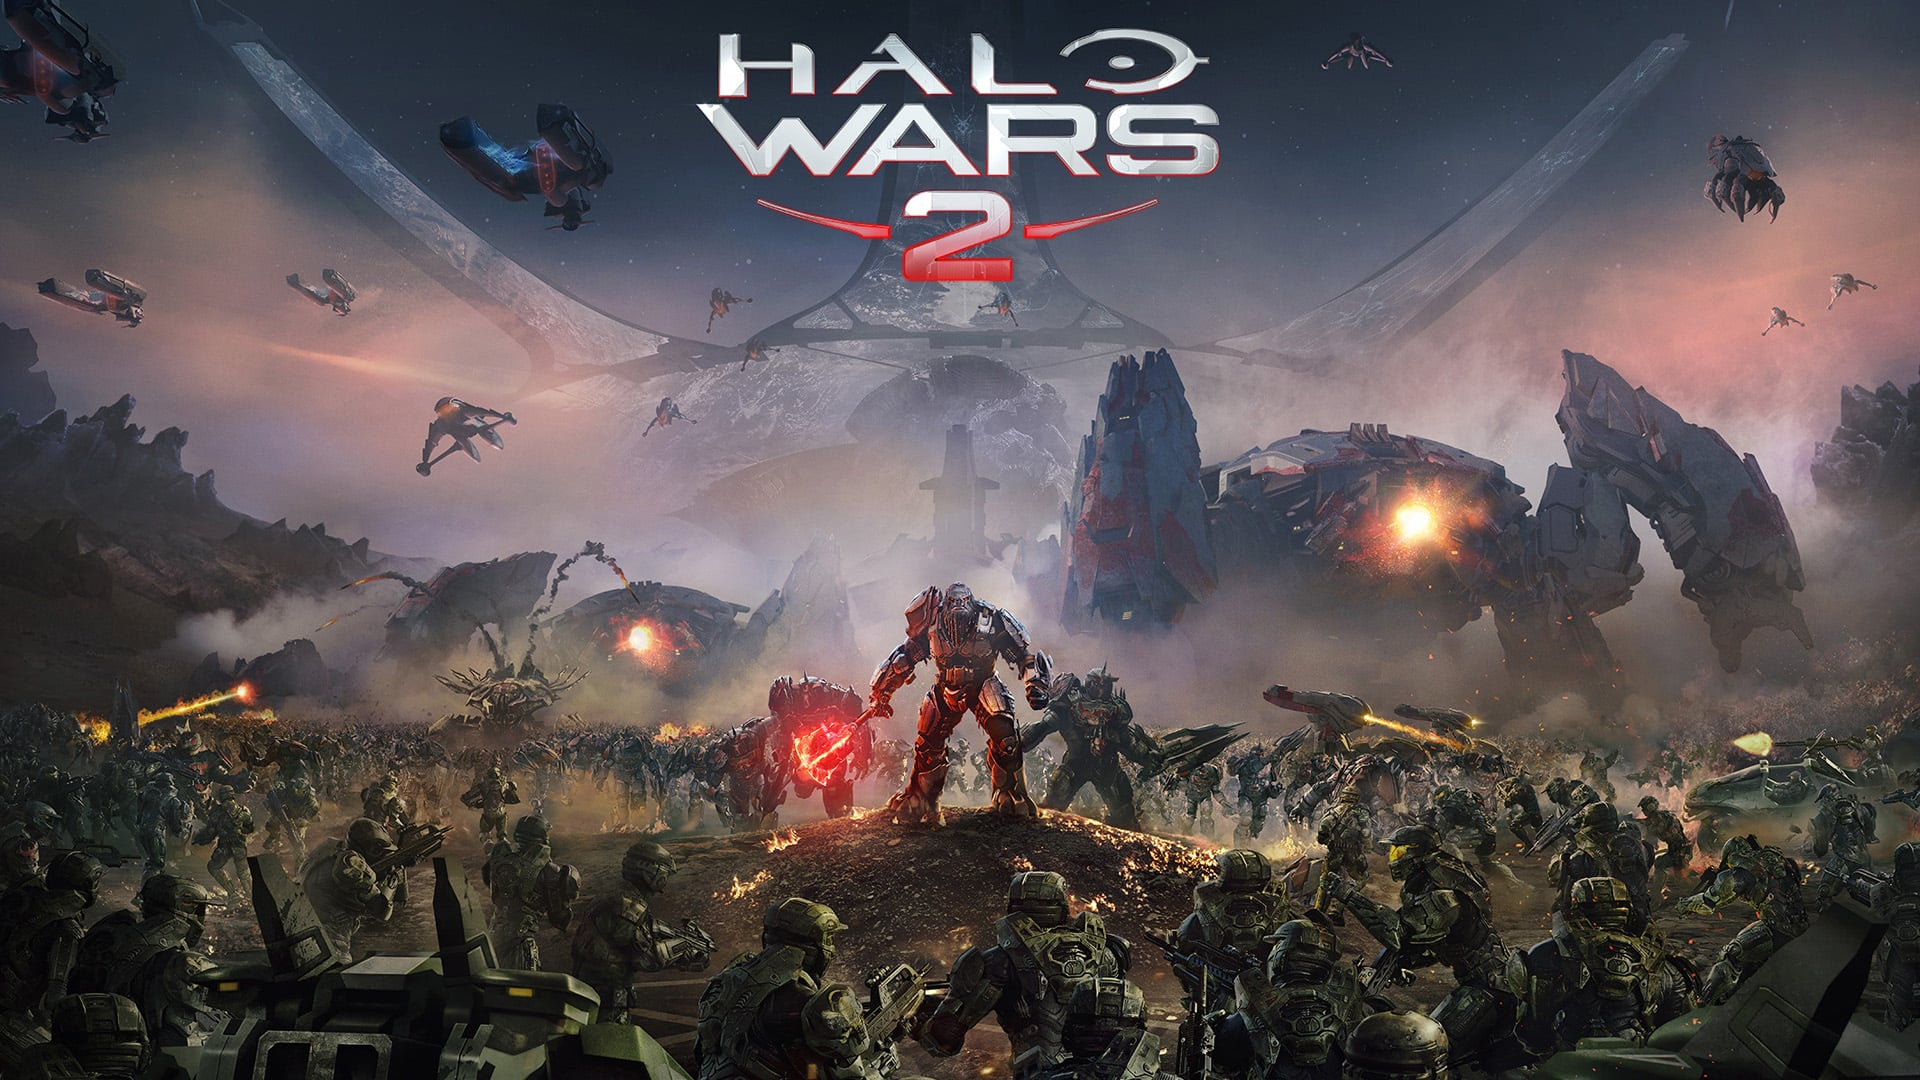 Halo Wars 2 Xbox One Key $18.95 @Gamesdeal